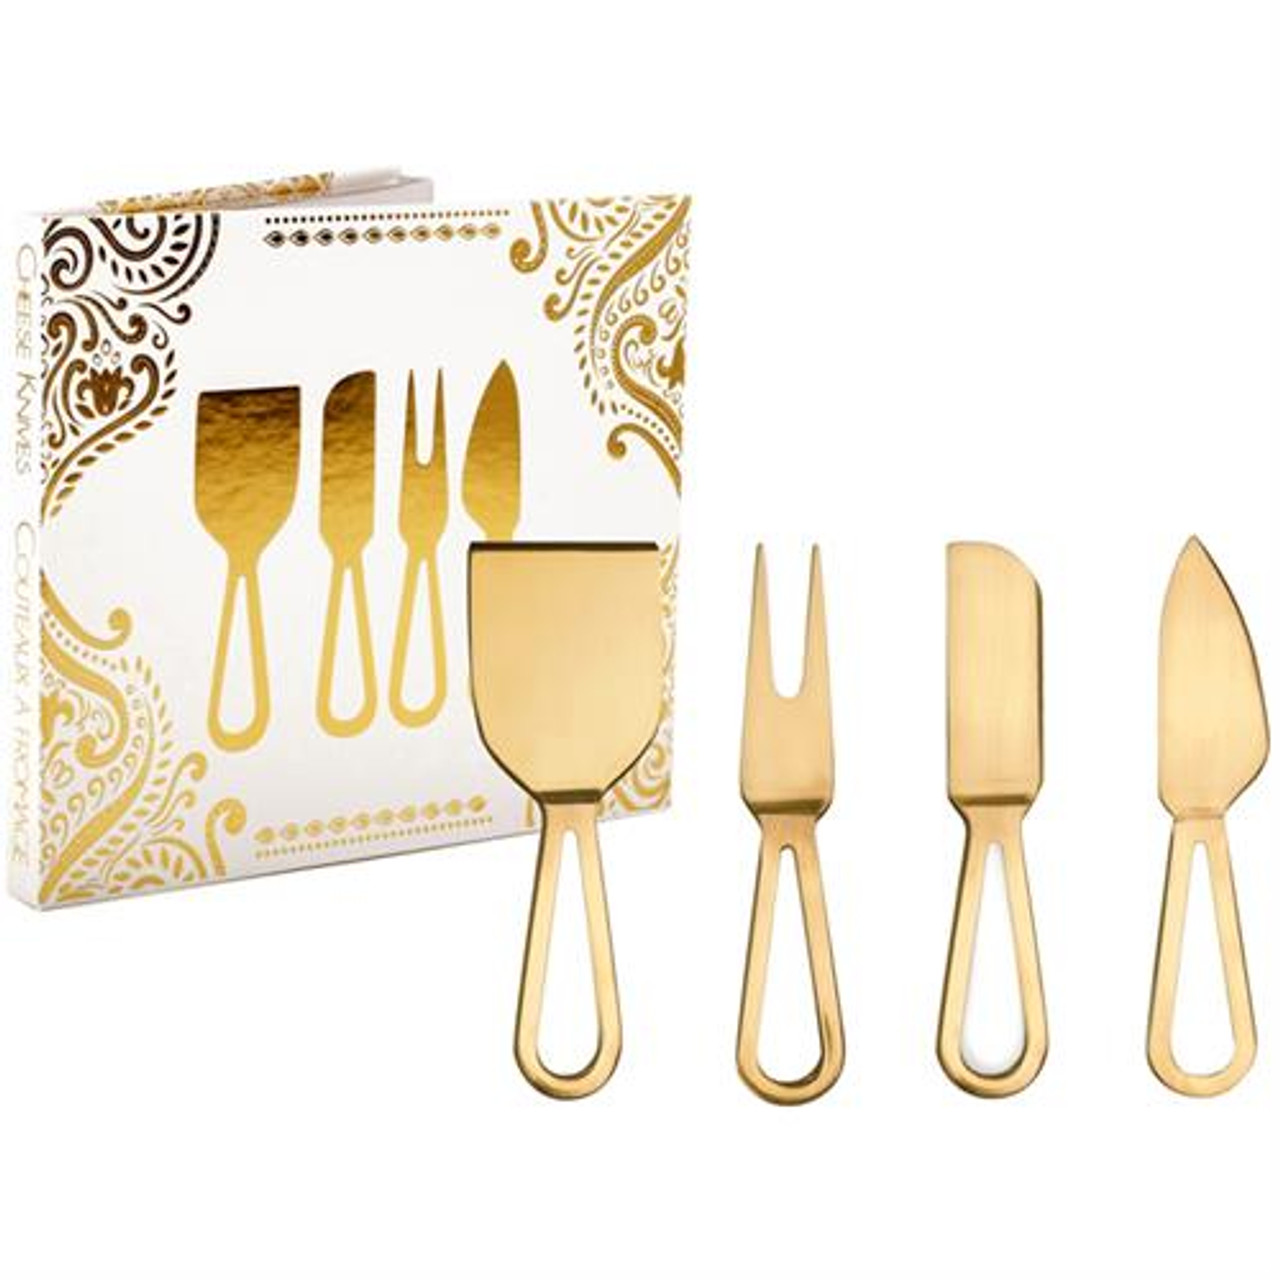 NATURAL LIVING CHEESE KNIFE SET - GOLD SET OF 4